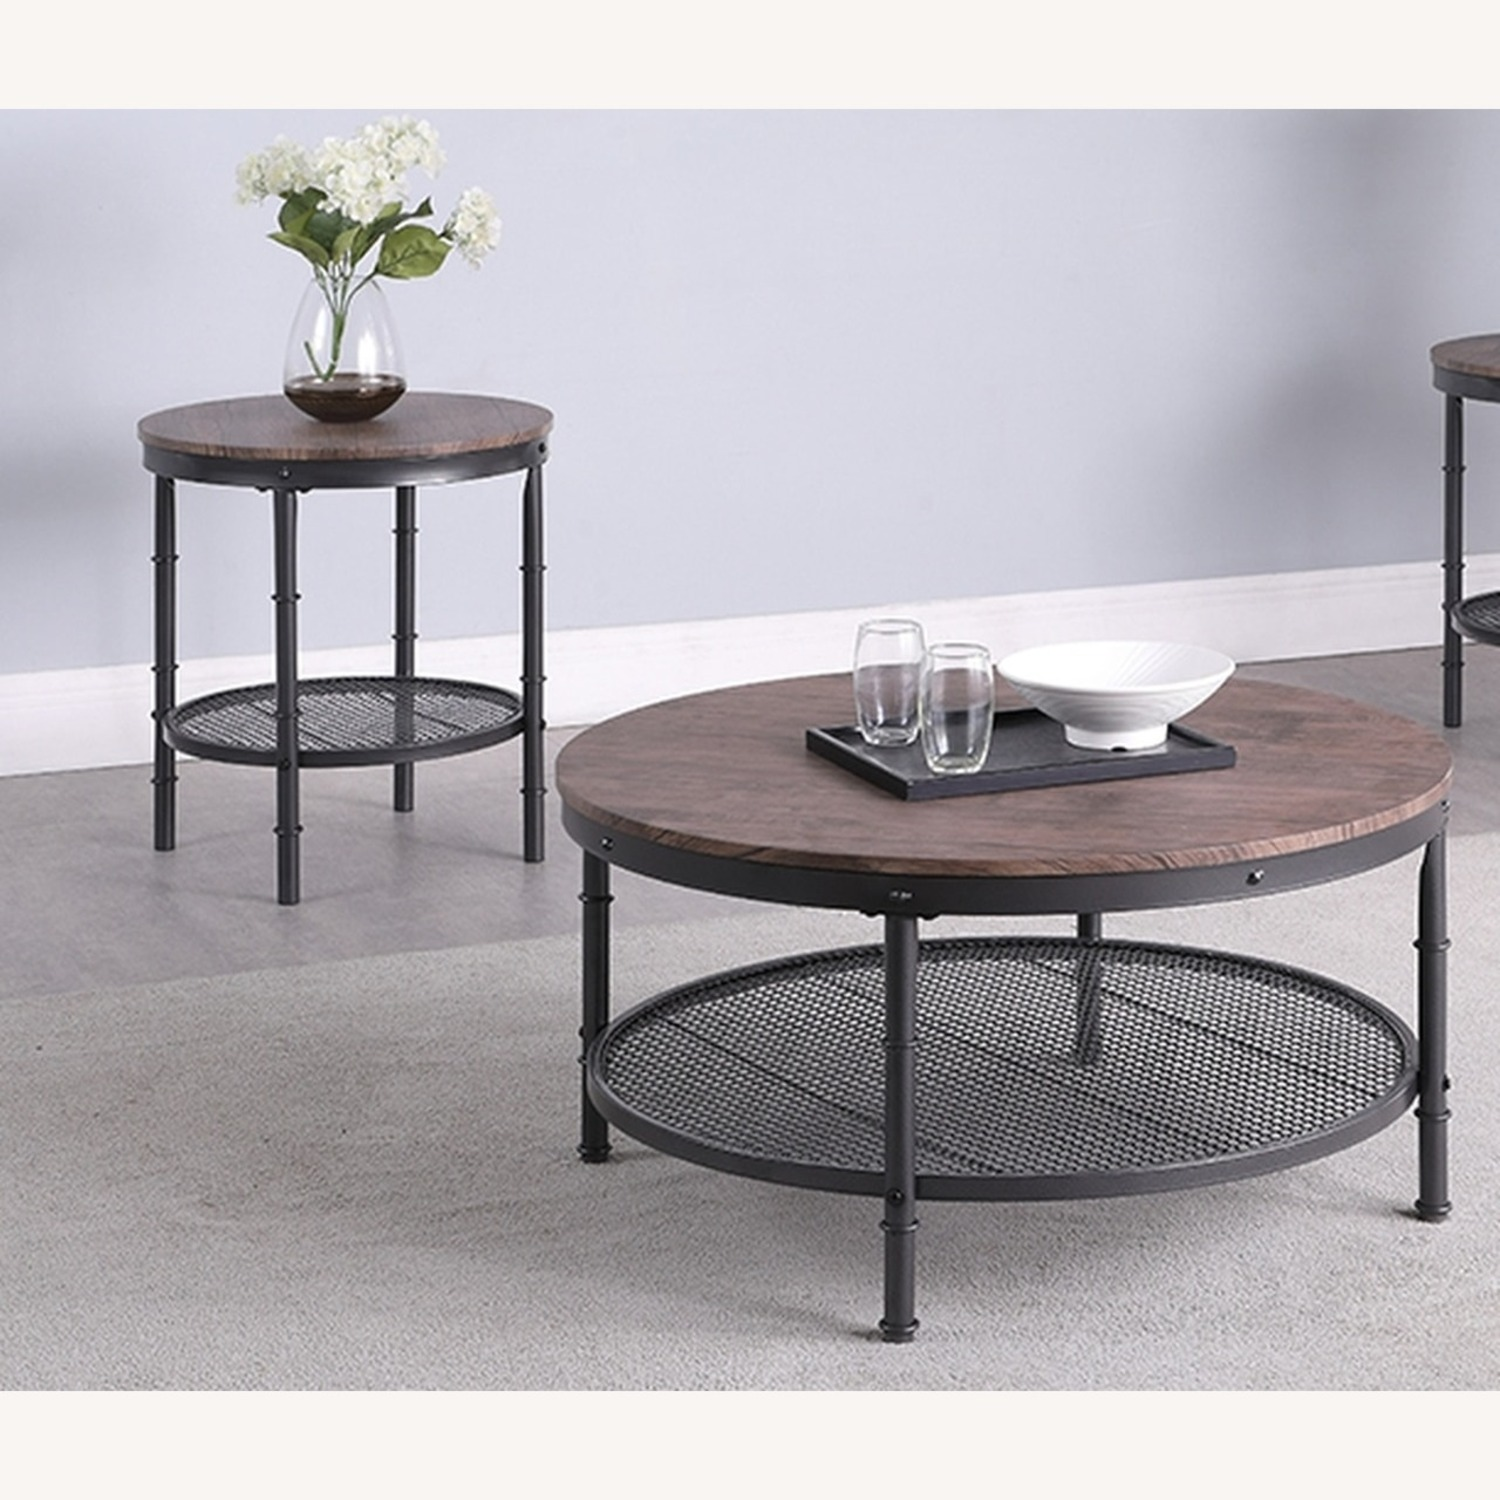 3-Piece Occasional Table In Weathered Brown Finish - image-1